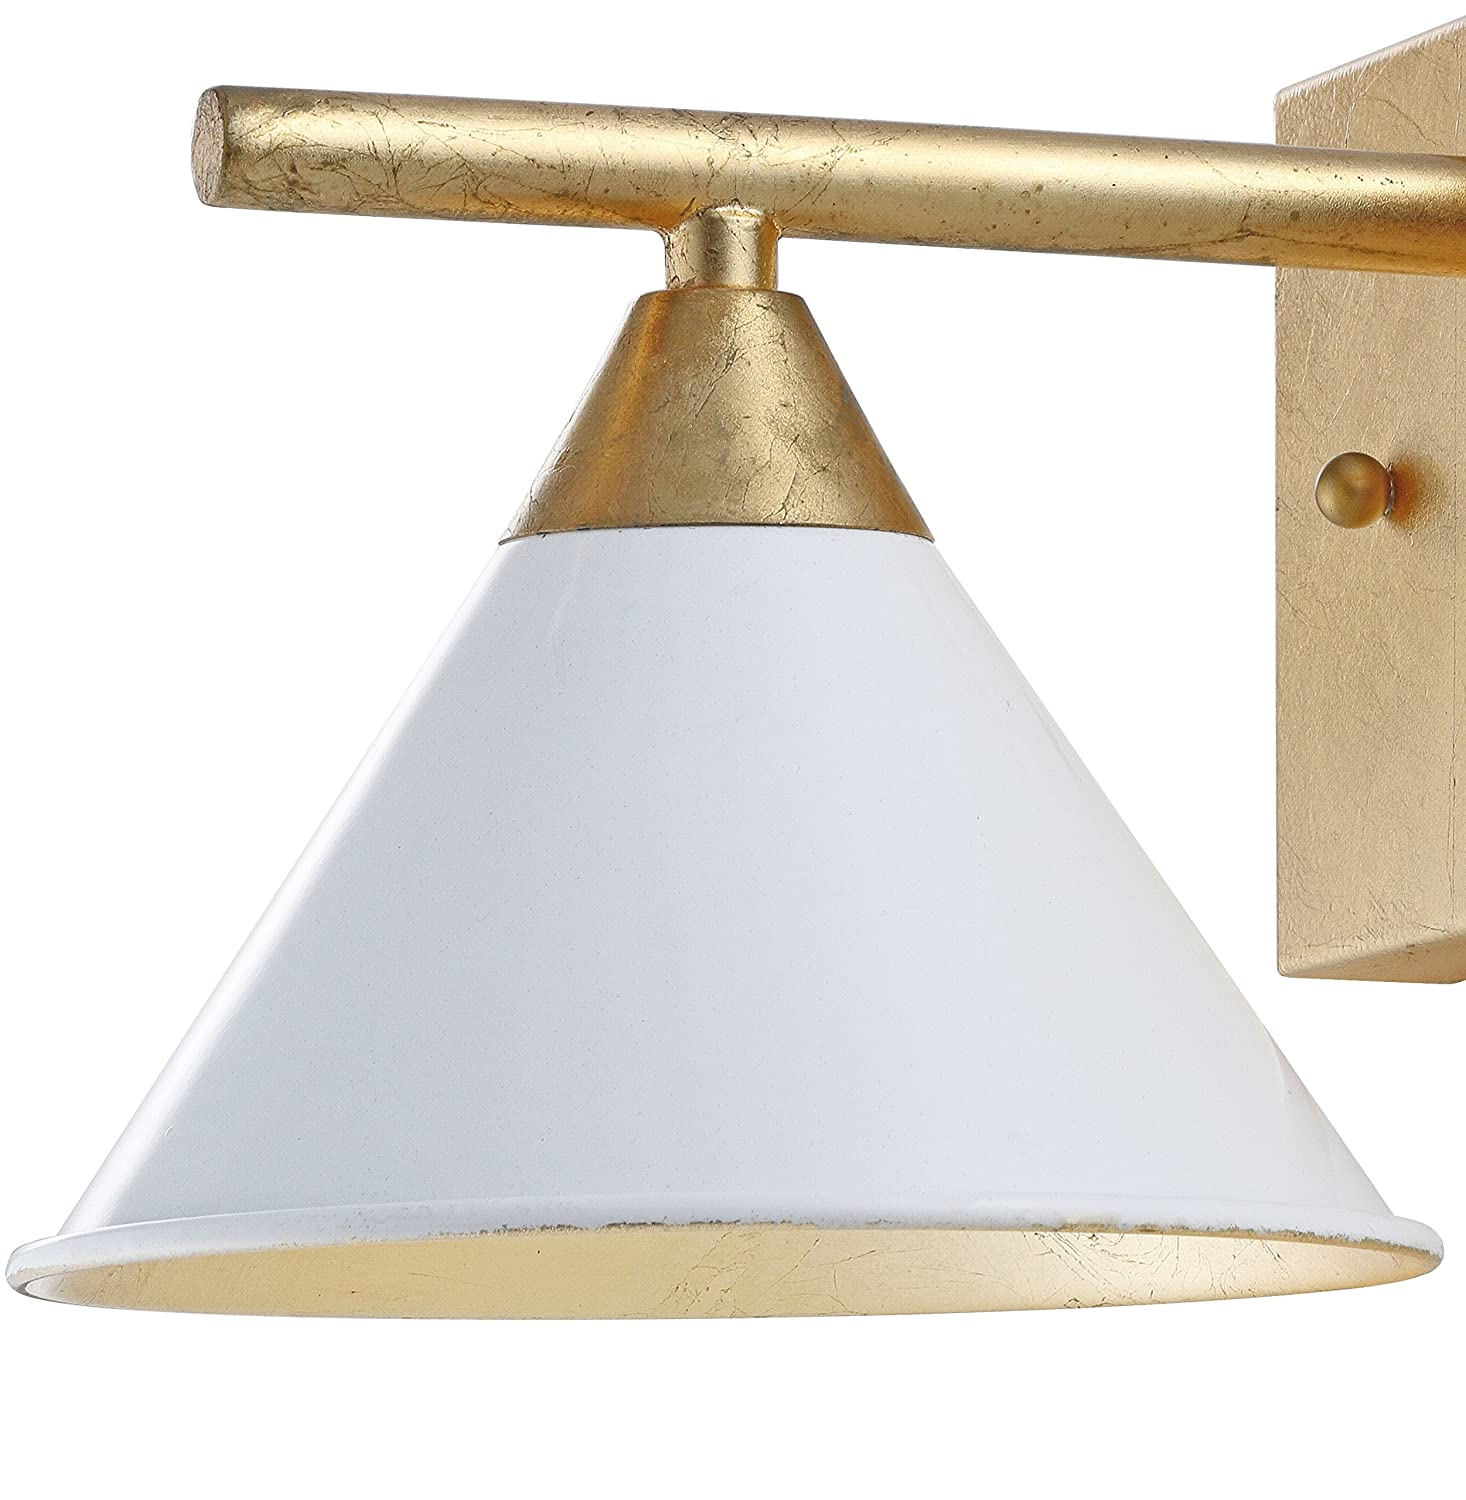 Yvette 9 1-Light Metal Wall Sconce White//Gold by JONATHAN Y